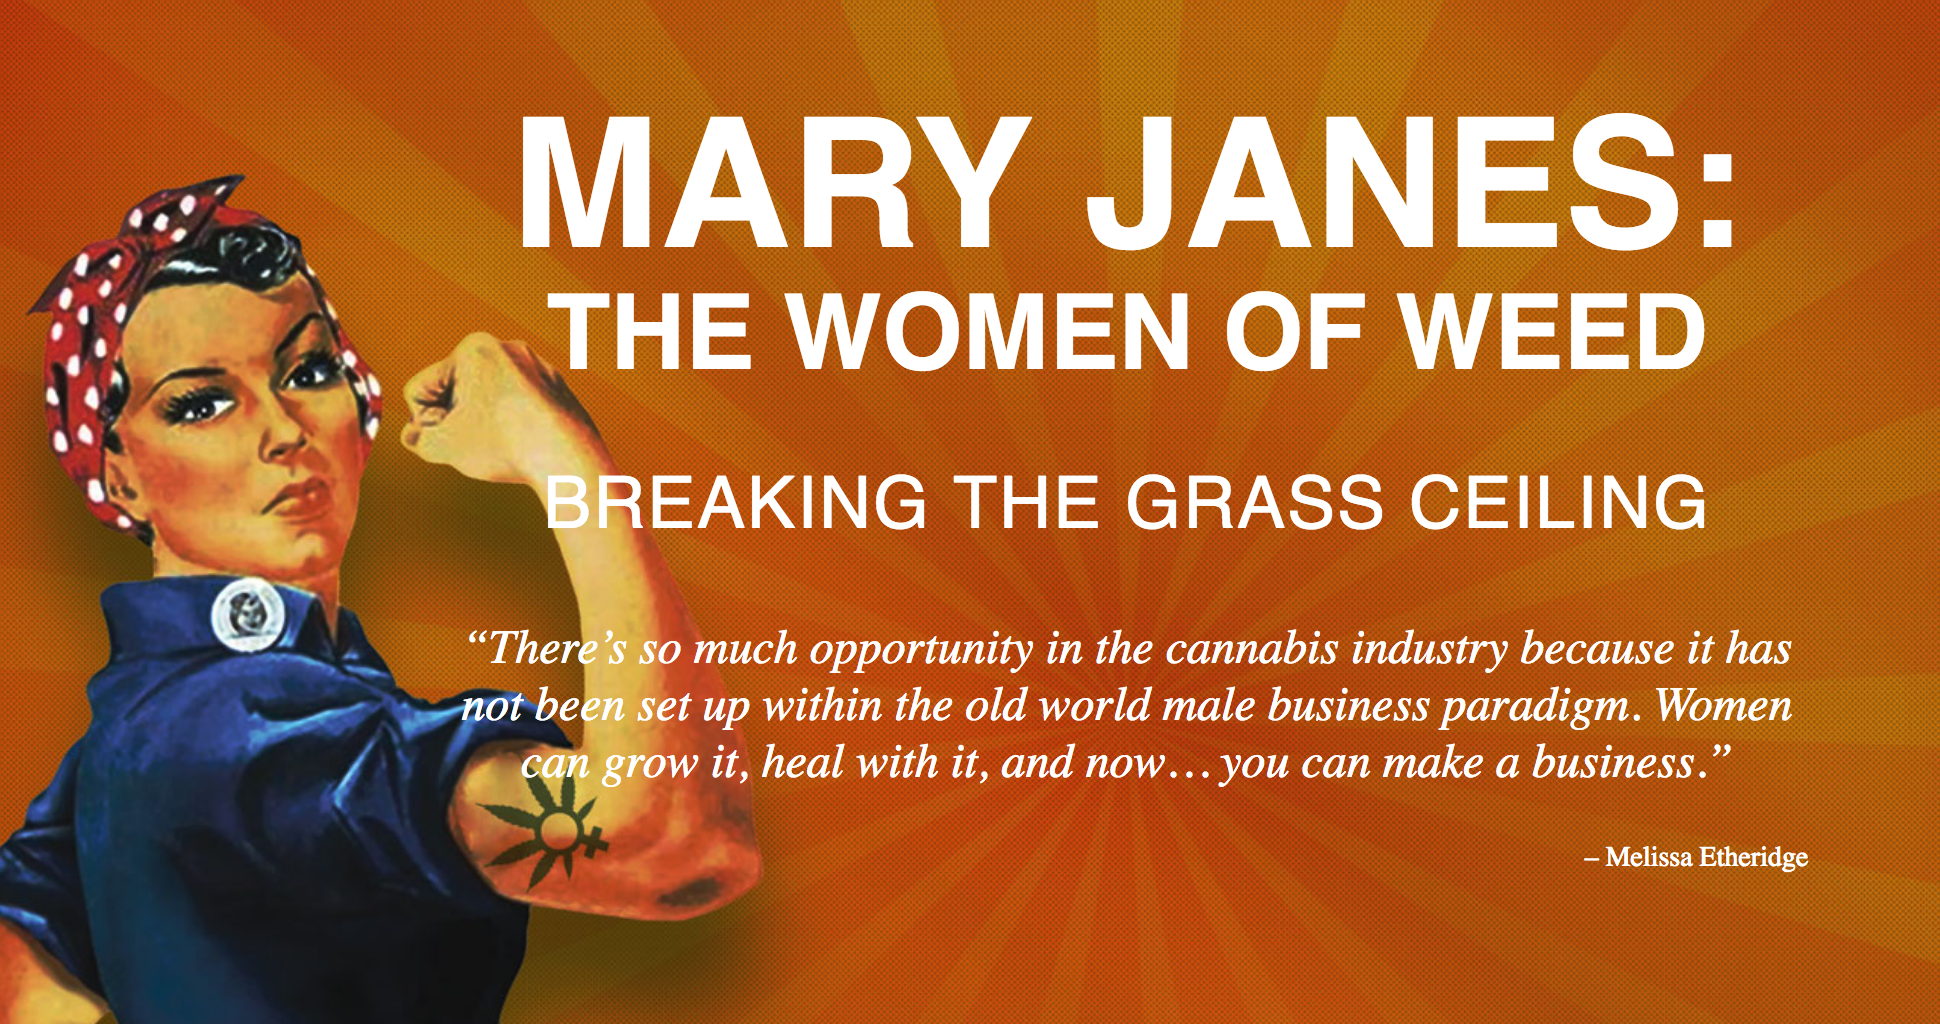 women of weed photo by marylyn media